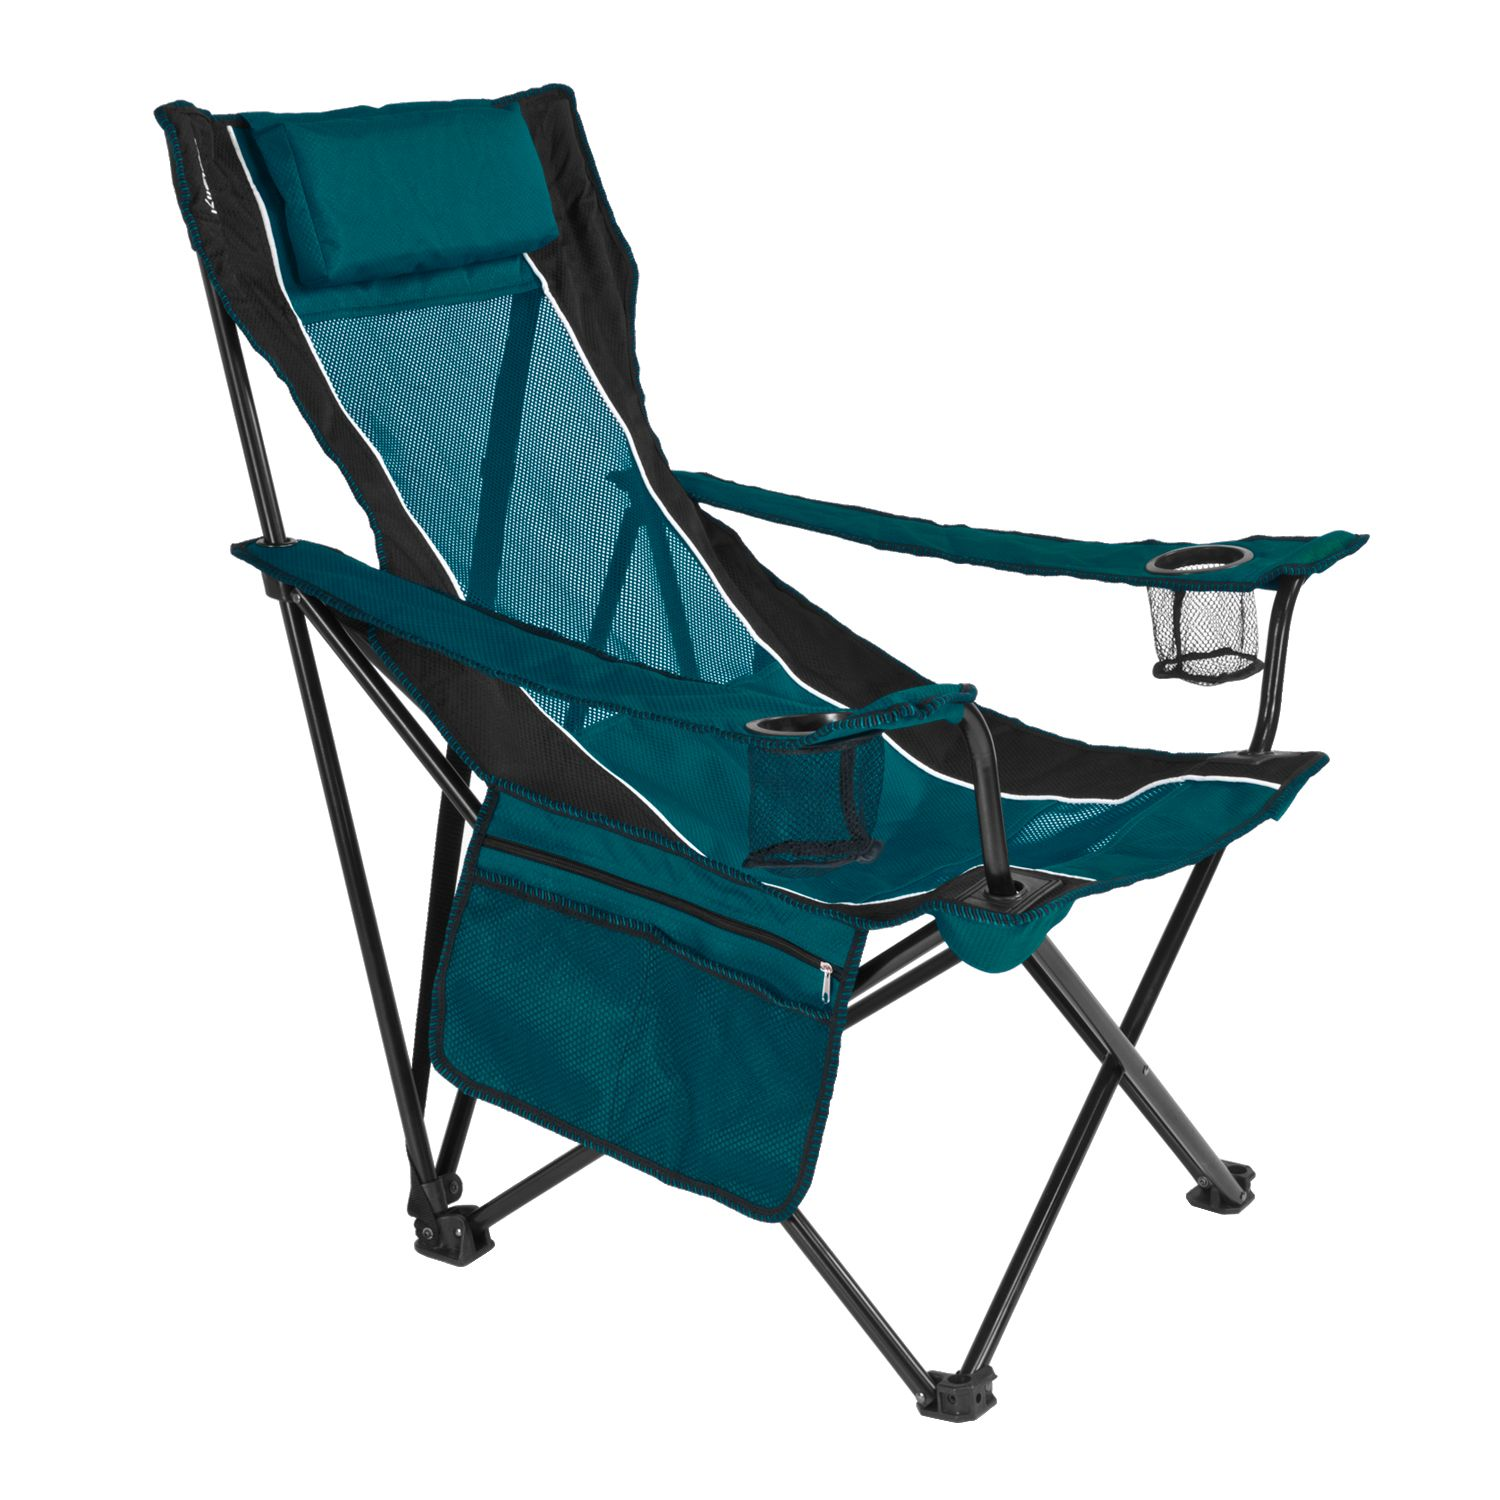 Camping chairs with umbrella - Product Image Kijaro Sling Chair